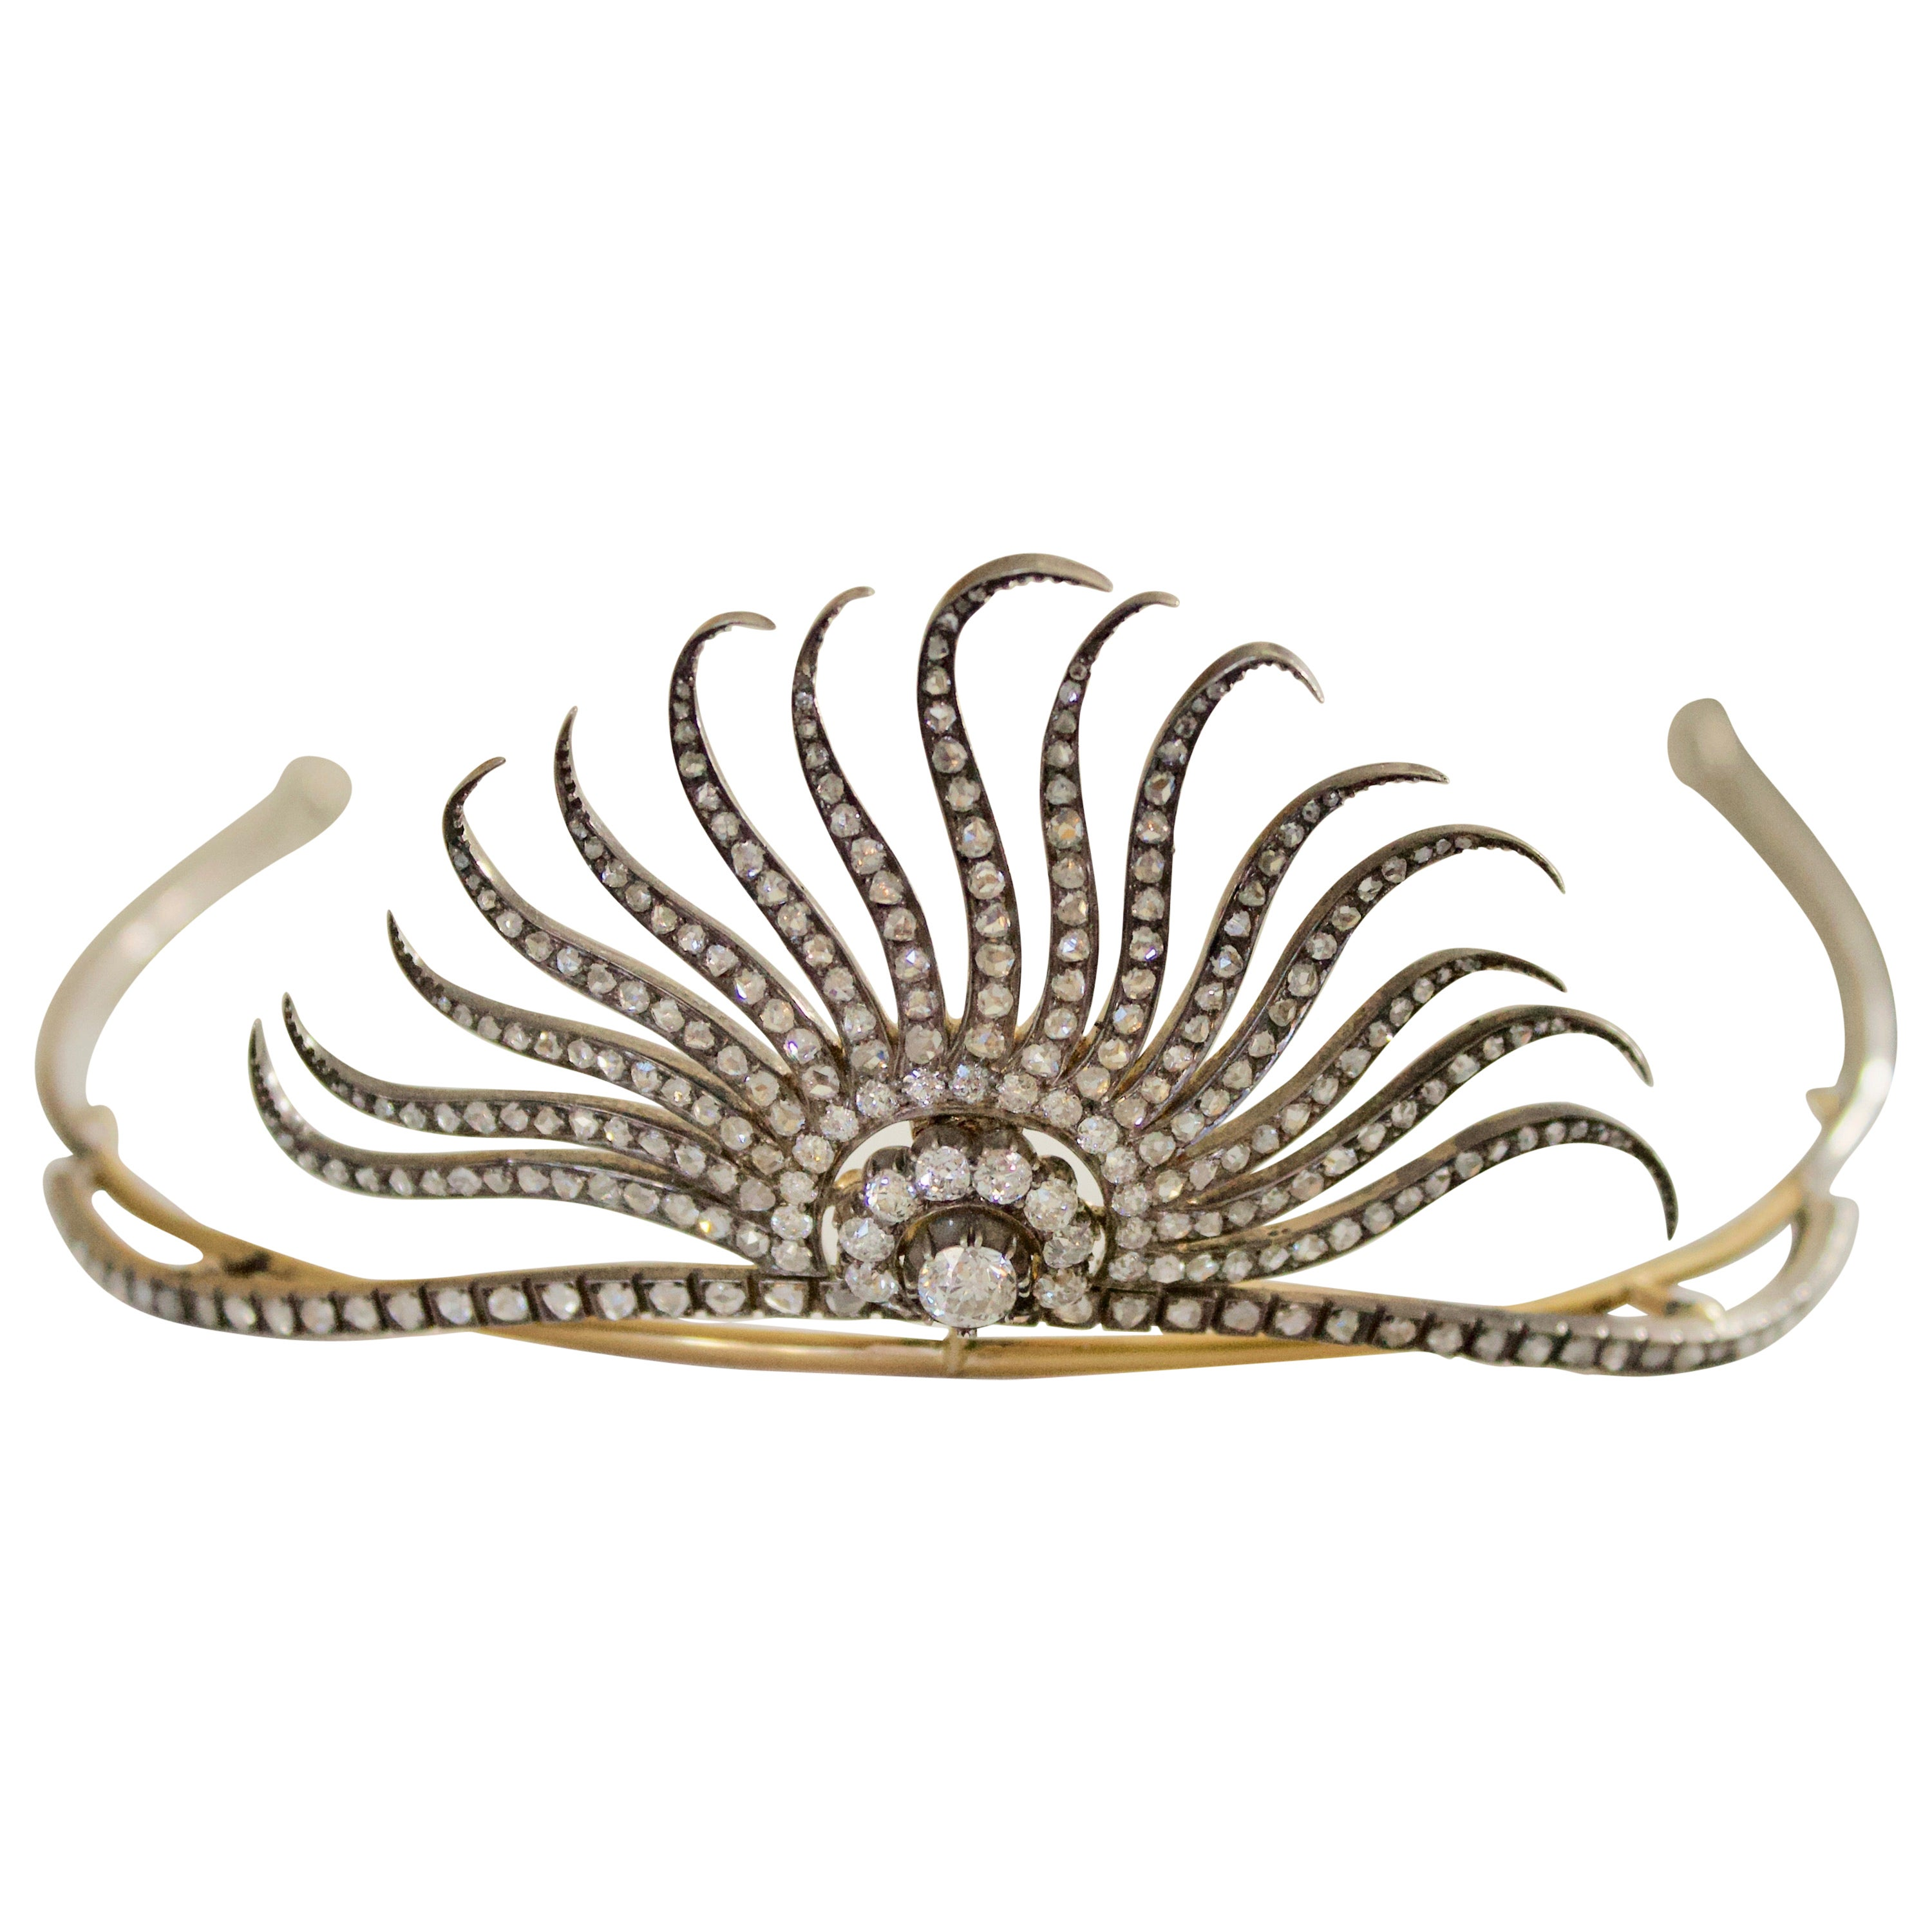 Diamond Tiara in Yellow Gold and Silver 7.10 Carat circa 1890 for Royalty Only